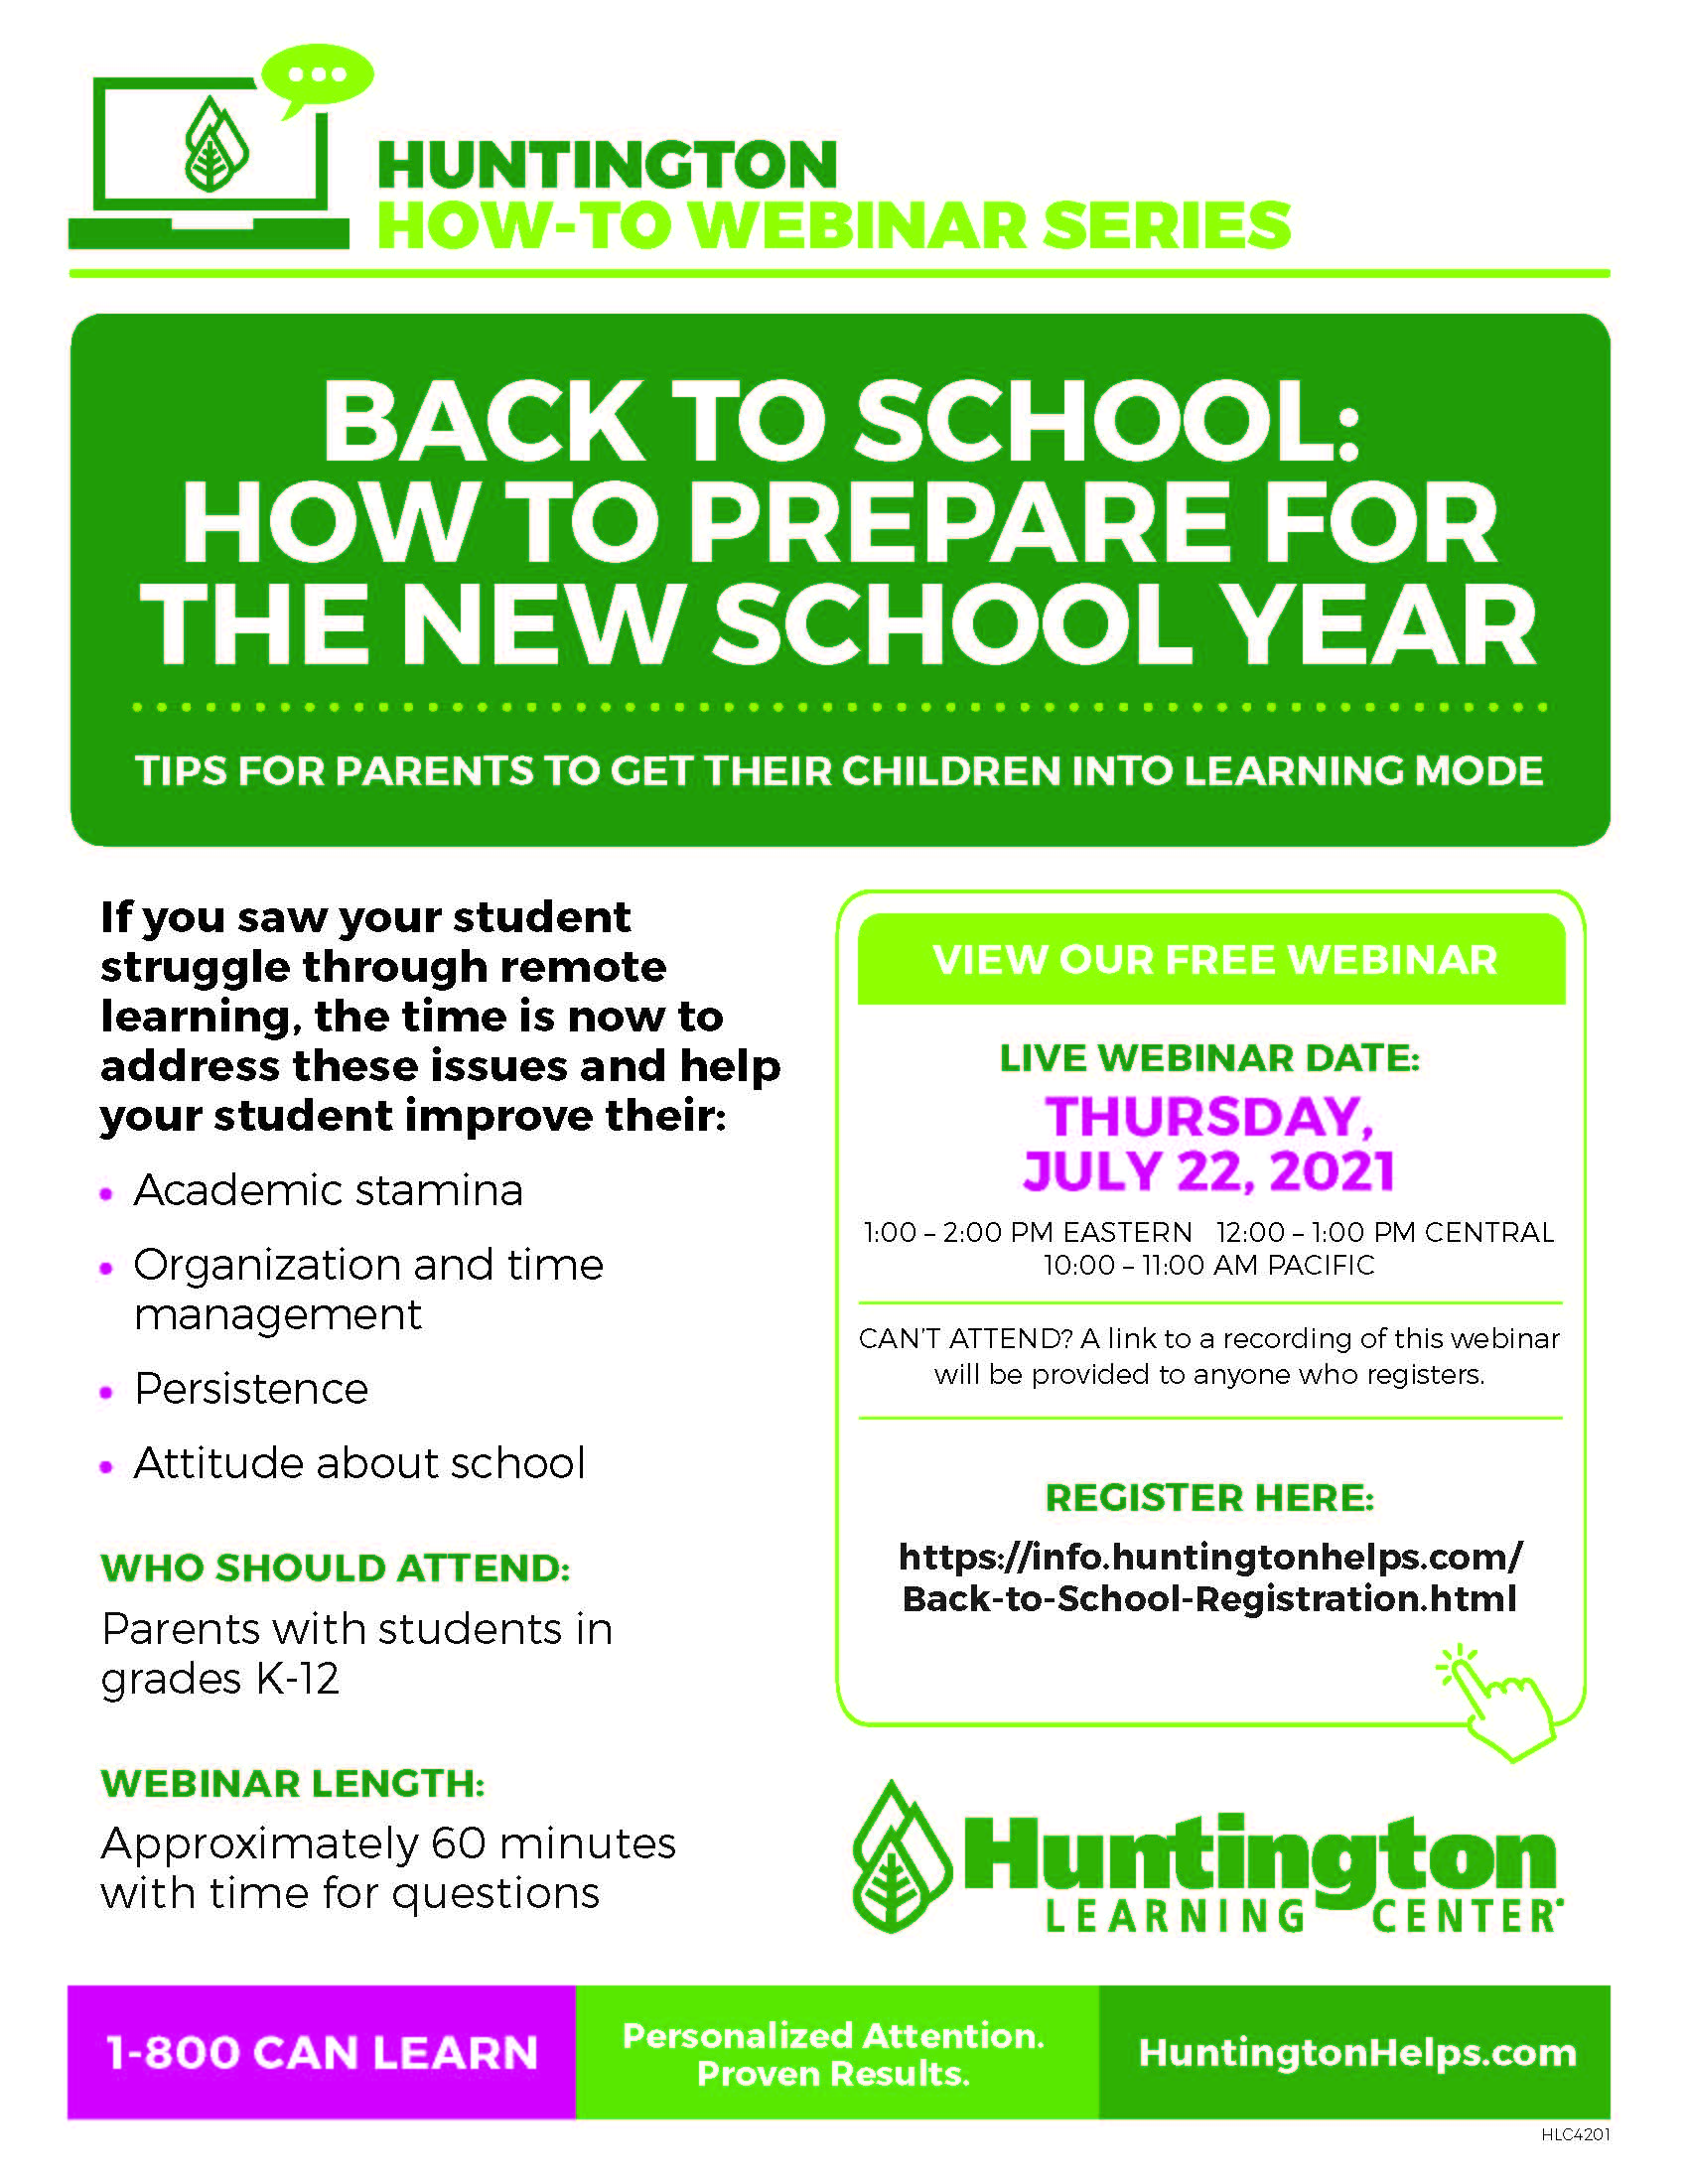 Back to School: How to Prepare for the New School Year at Huntington Learning Center